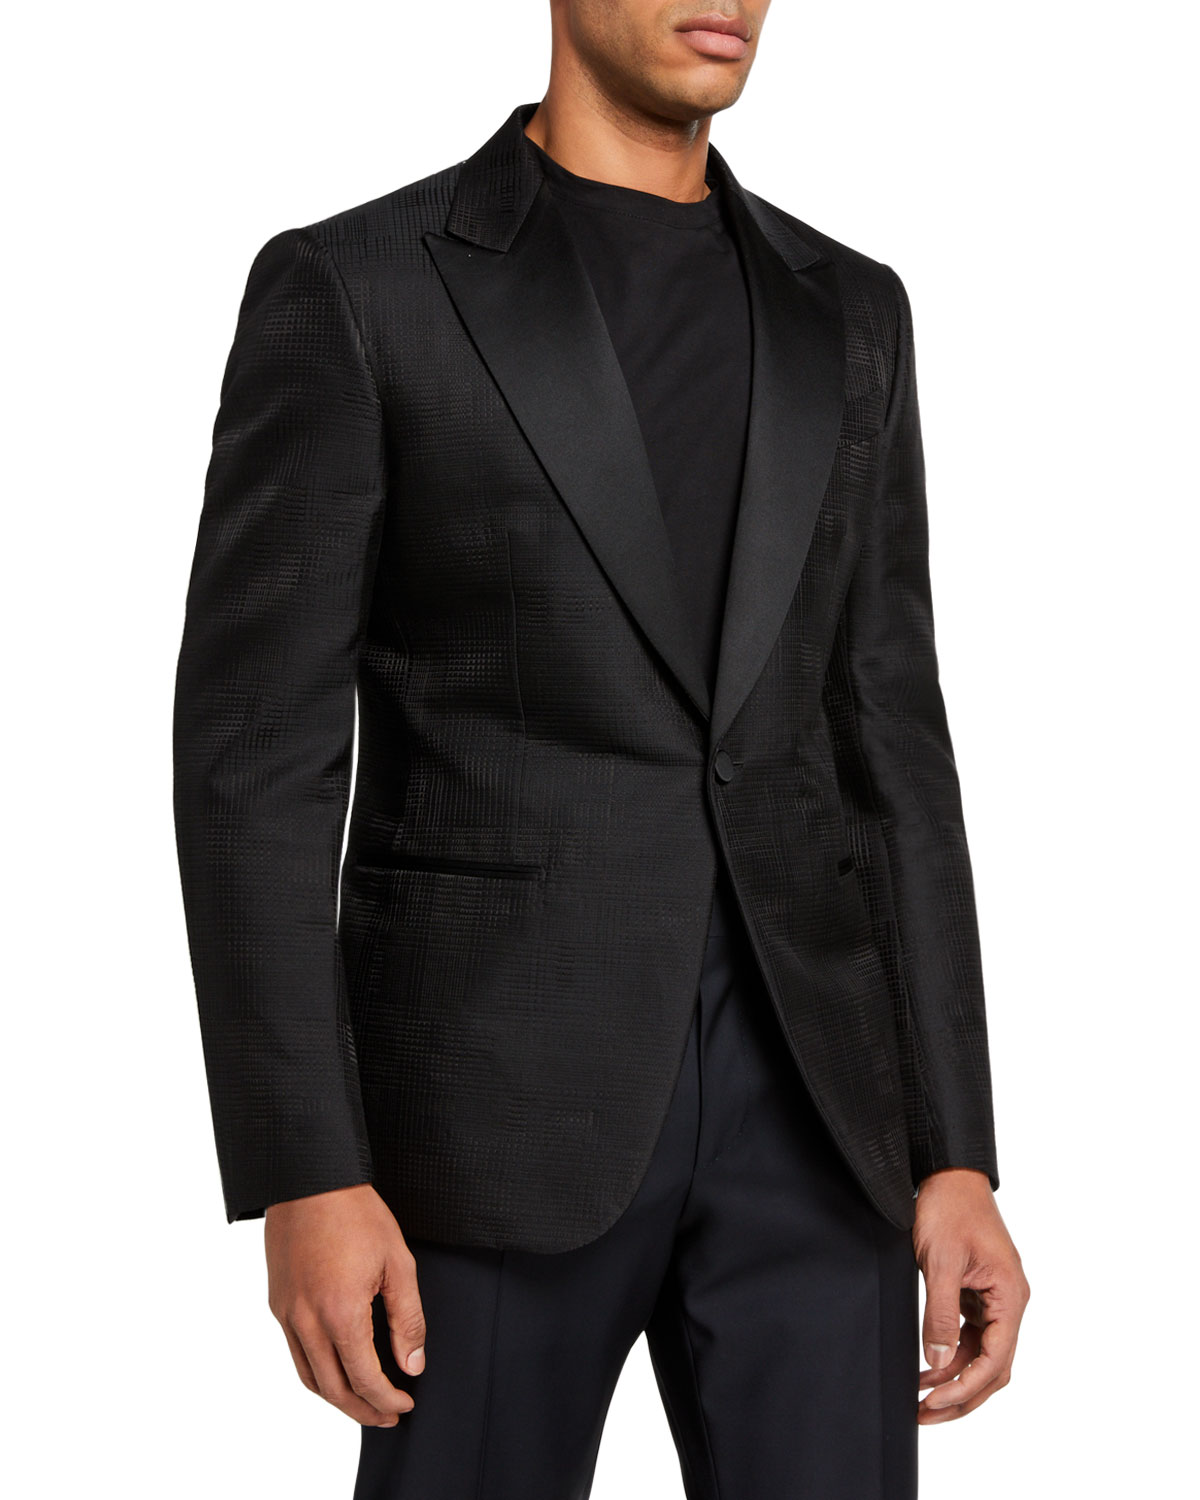 Ermenegildo Zegna Men's Peak-Lapel Dinner Jacket